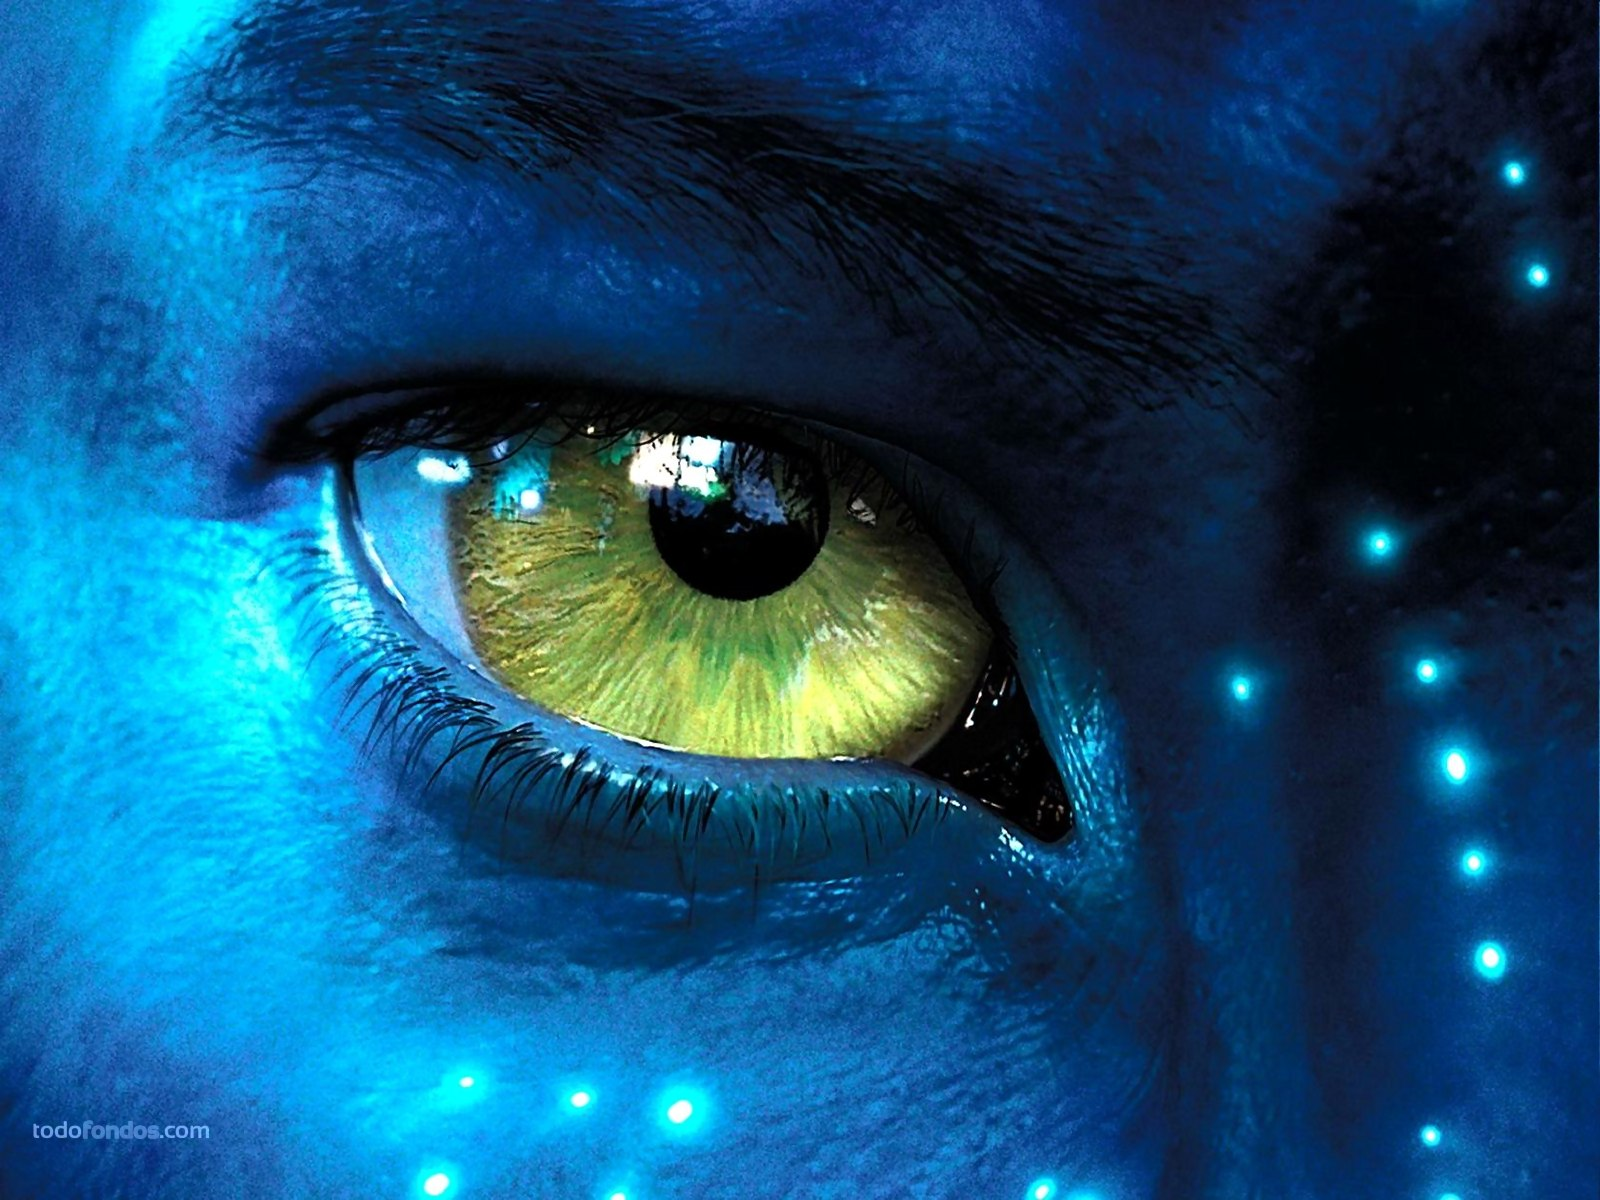 Avatar Hd Wallpapers 1080p Wallpapersafari